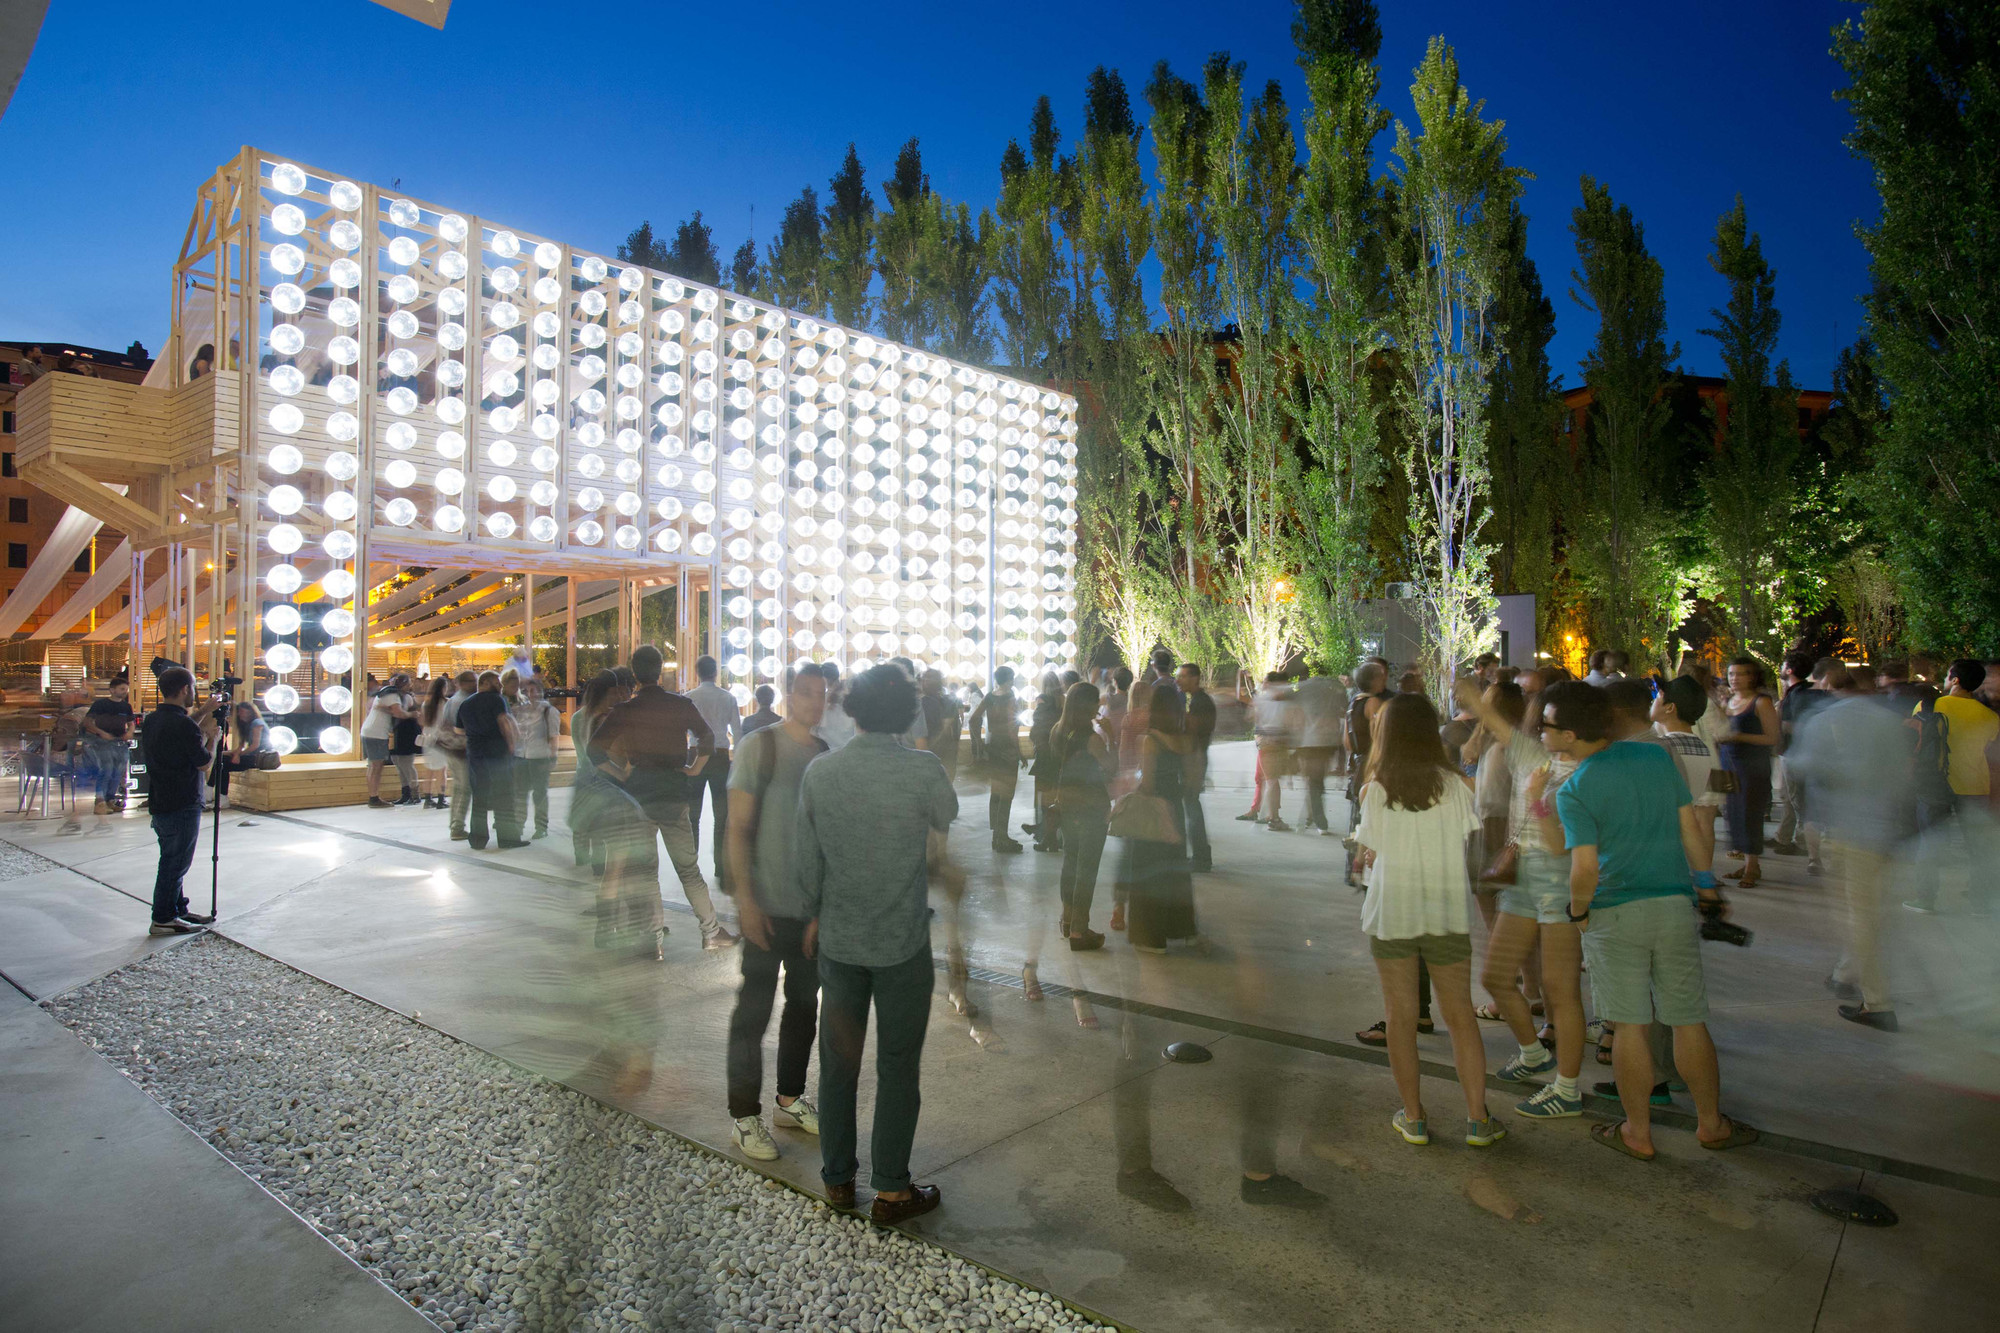 Orizzontale Illuminates Outdoor Theater with Recycled Keg Wall at MAXXI, © Musacchio Ianniello, courtesy Fondazione MAXXI